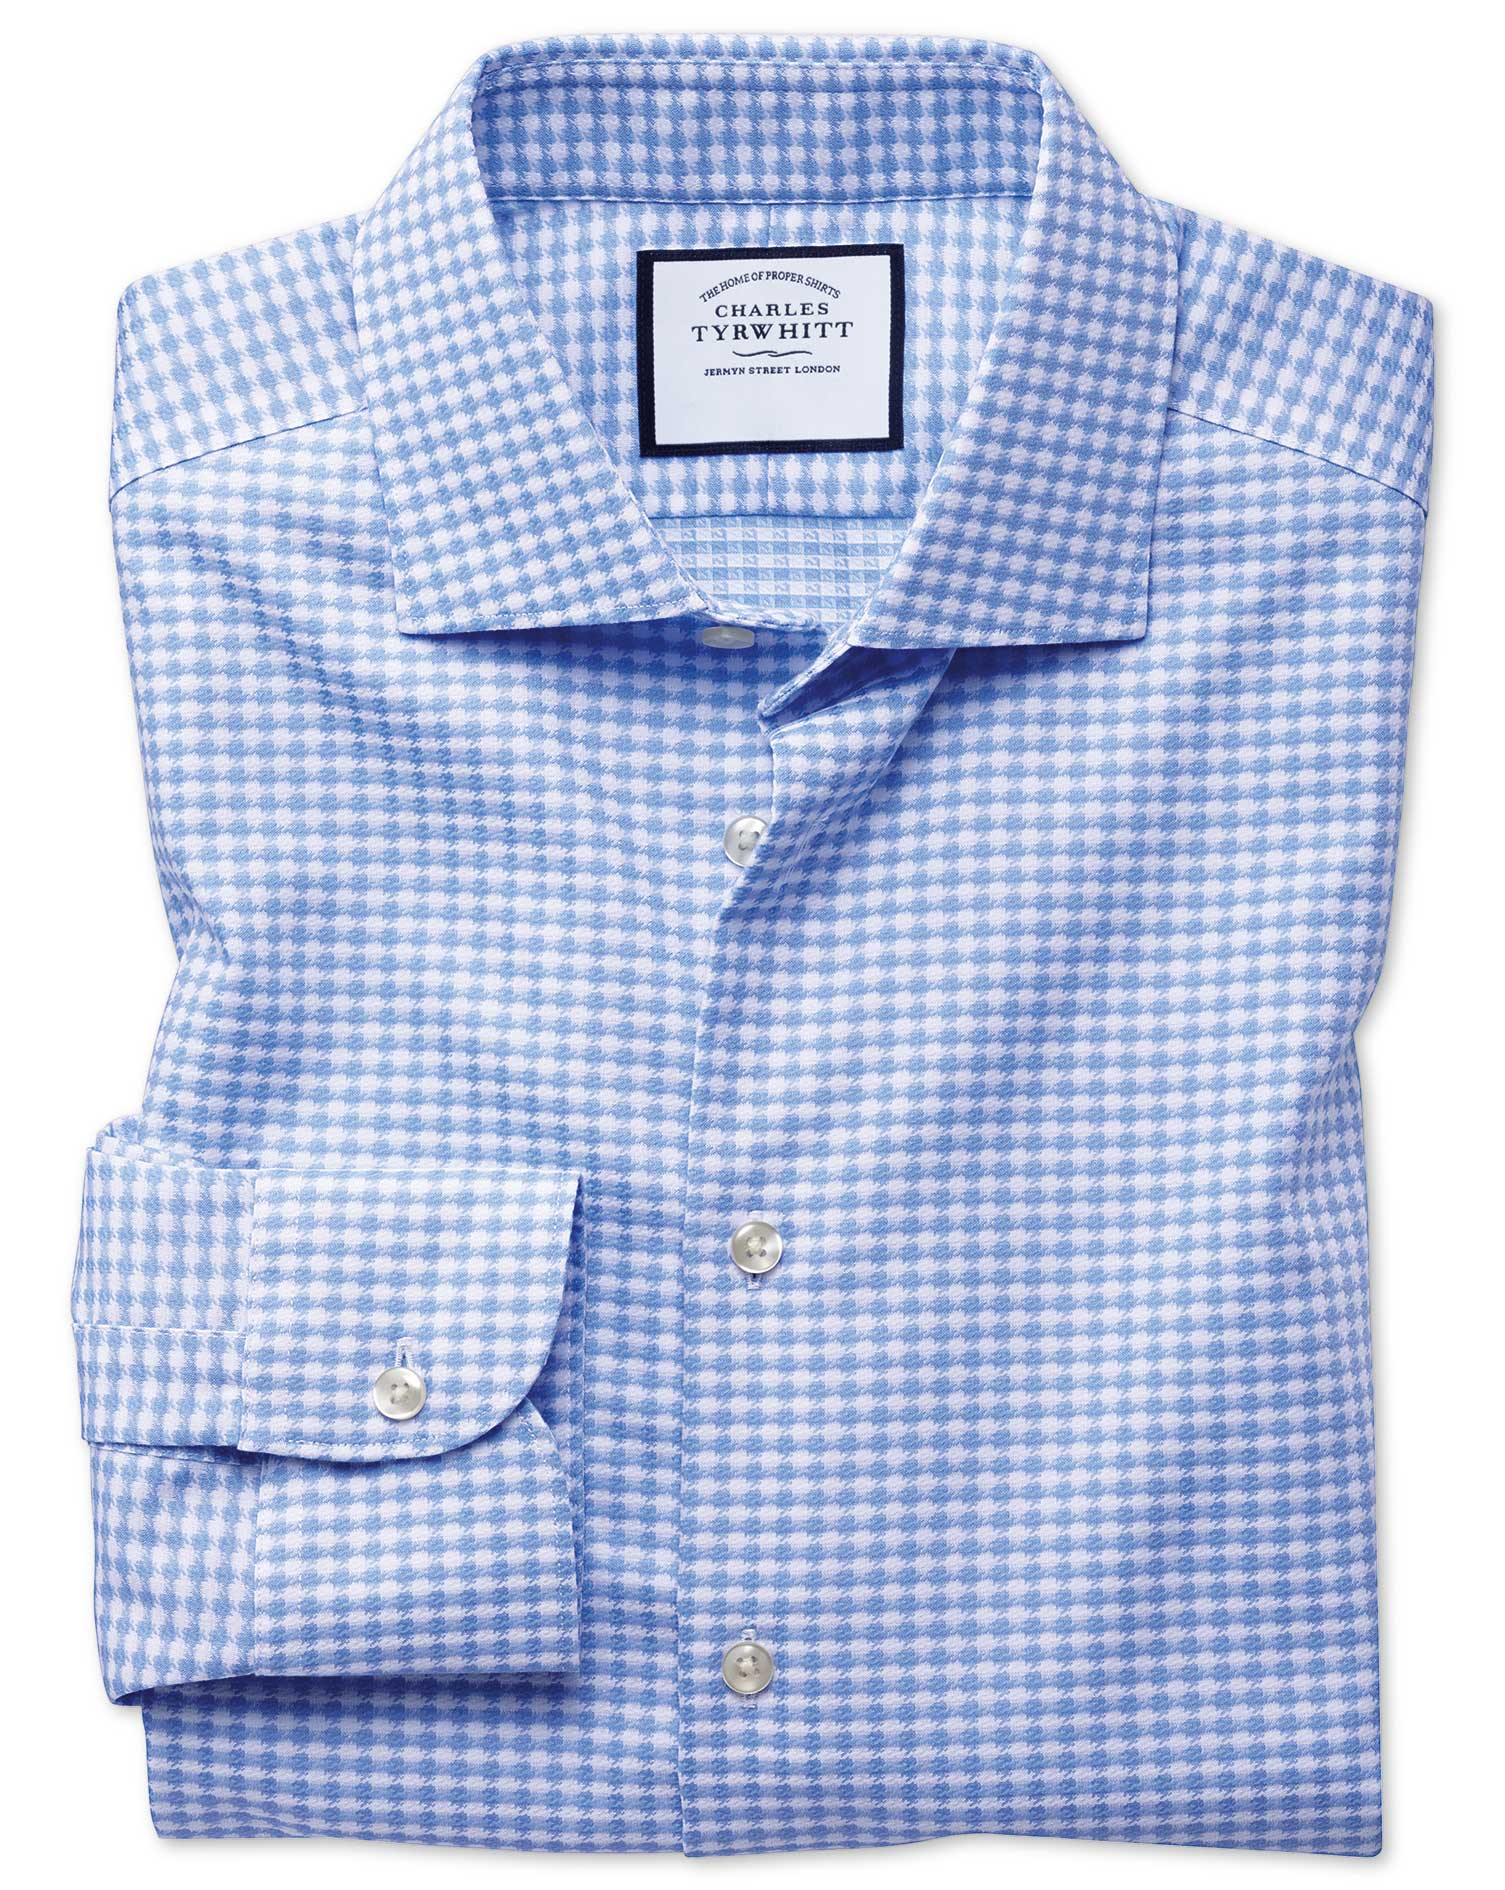 Slim Fit Semi-Cutaway Business Casual Non-Iron Modern Textures Sky Blue Dogtooth Cotton Formal Shirt